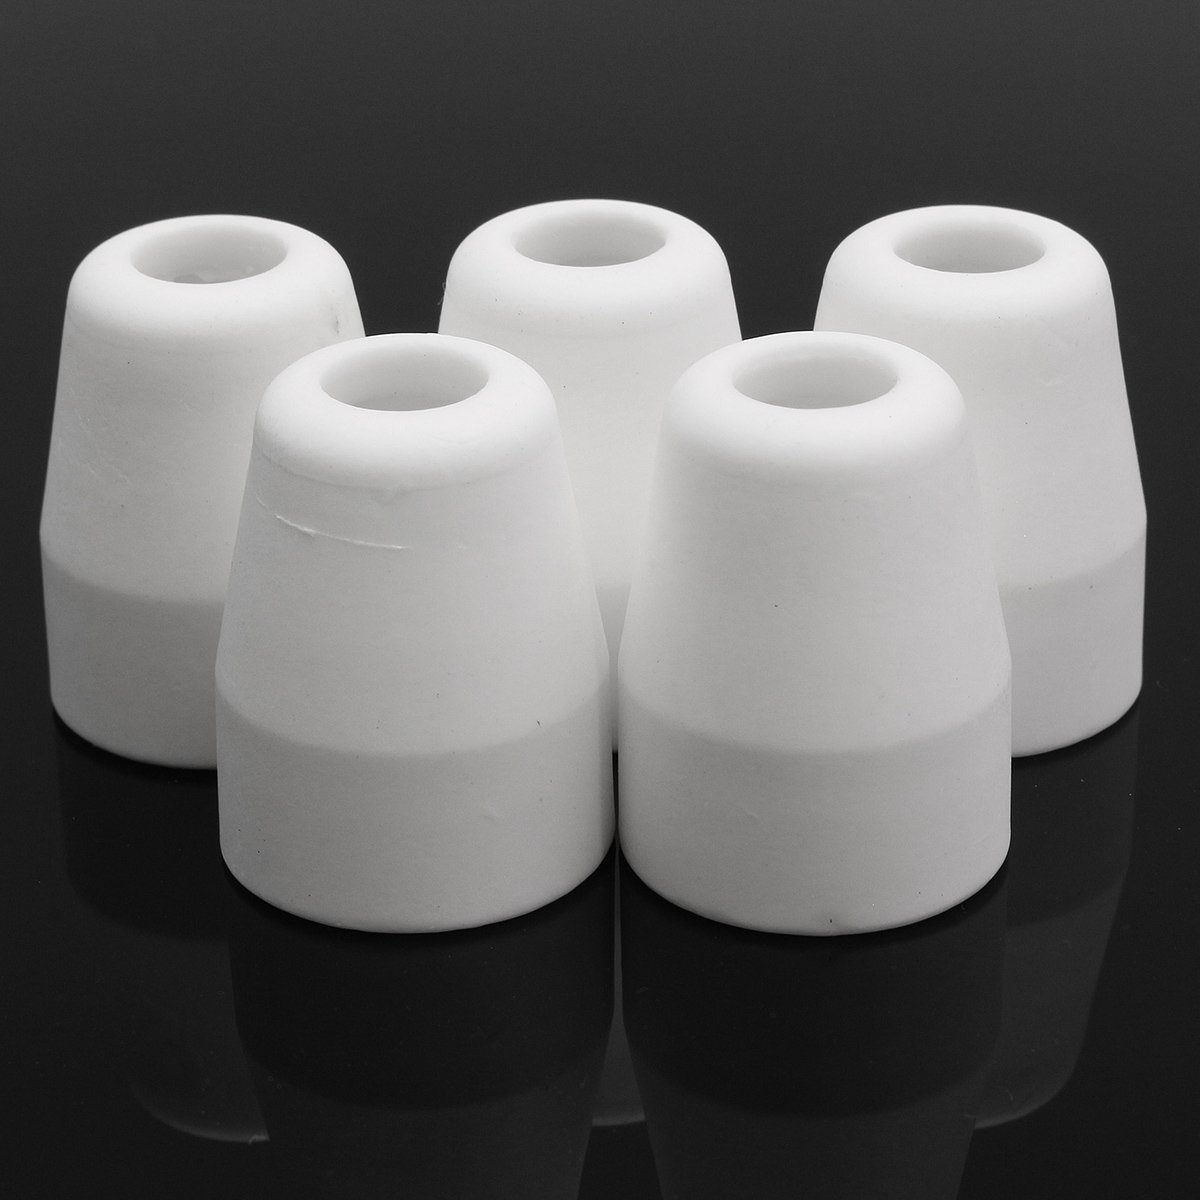 Pukido 5Pcs Plasma Cutter Consumable Shield Cups for LG-40 PT-31 Cutting Torch CUT40 CUT50